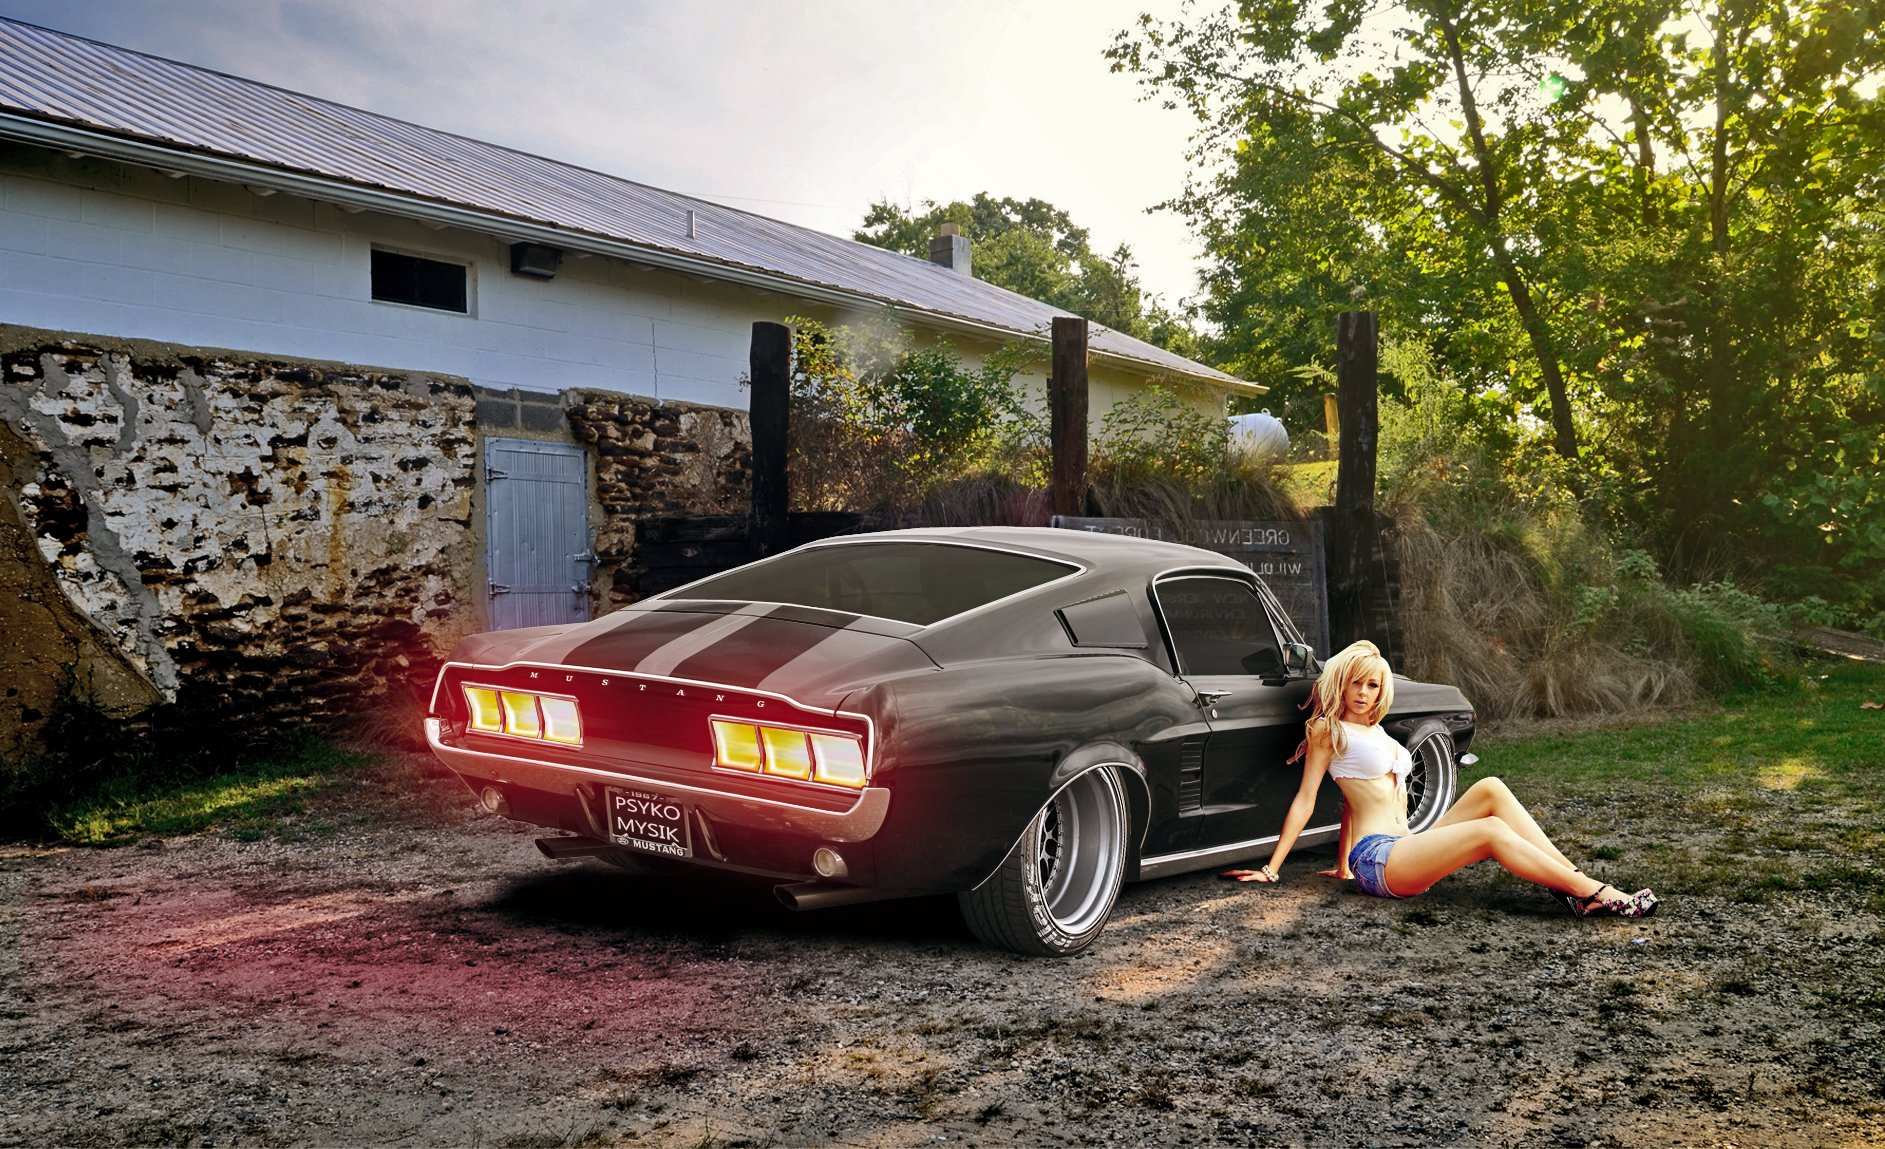 1967 ford mustang fastback muscle classic hot rod rods wallpaper 1885x1149 484399 wallpaperup